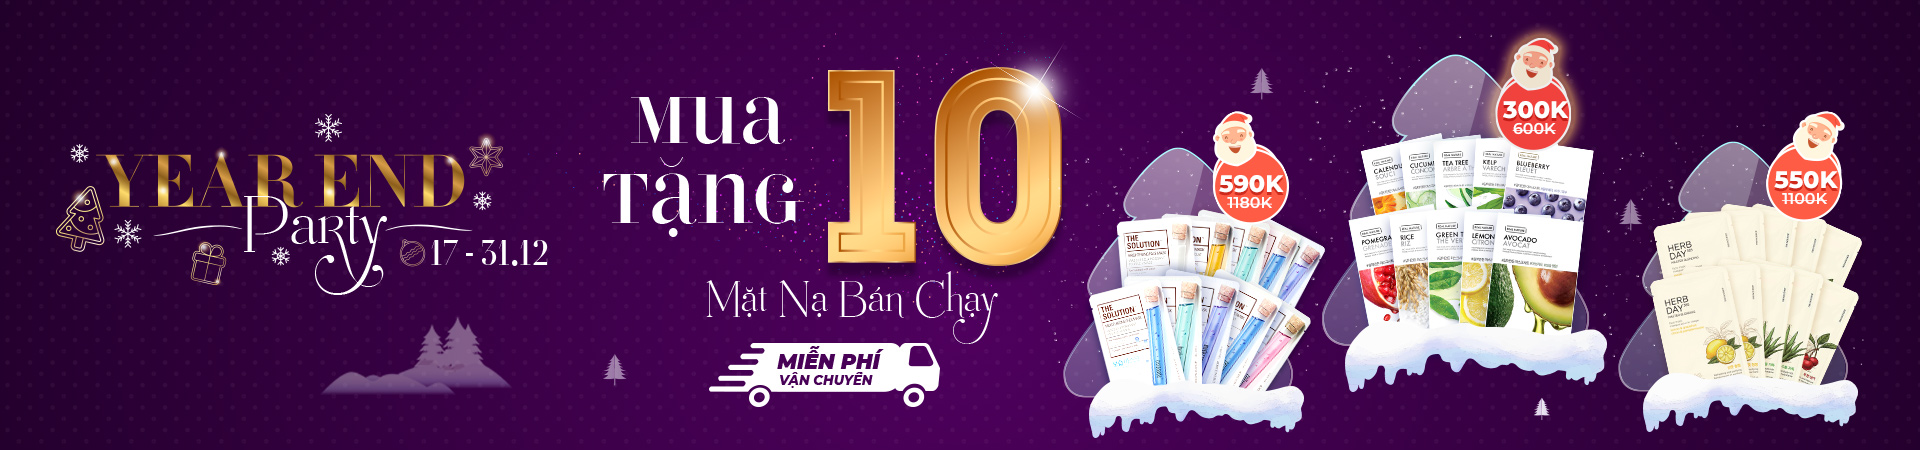 YEAR END PARTY - MUA 10 TẶNG 10